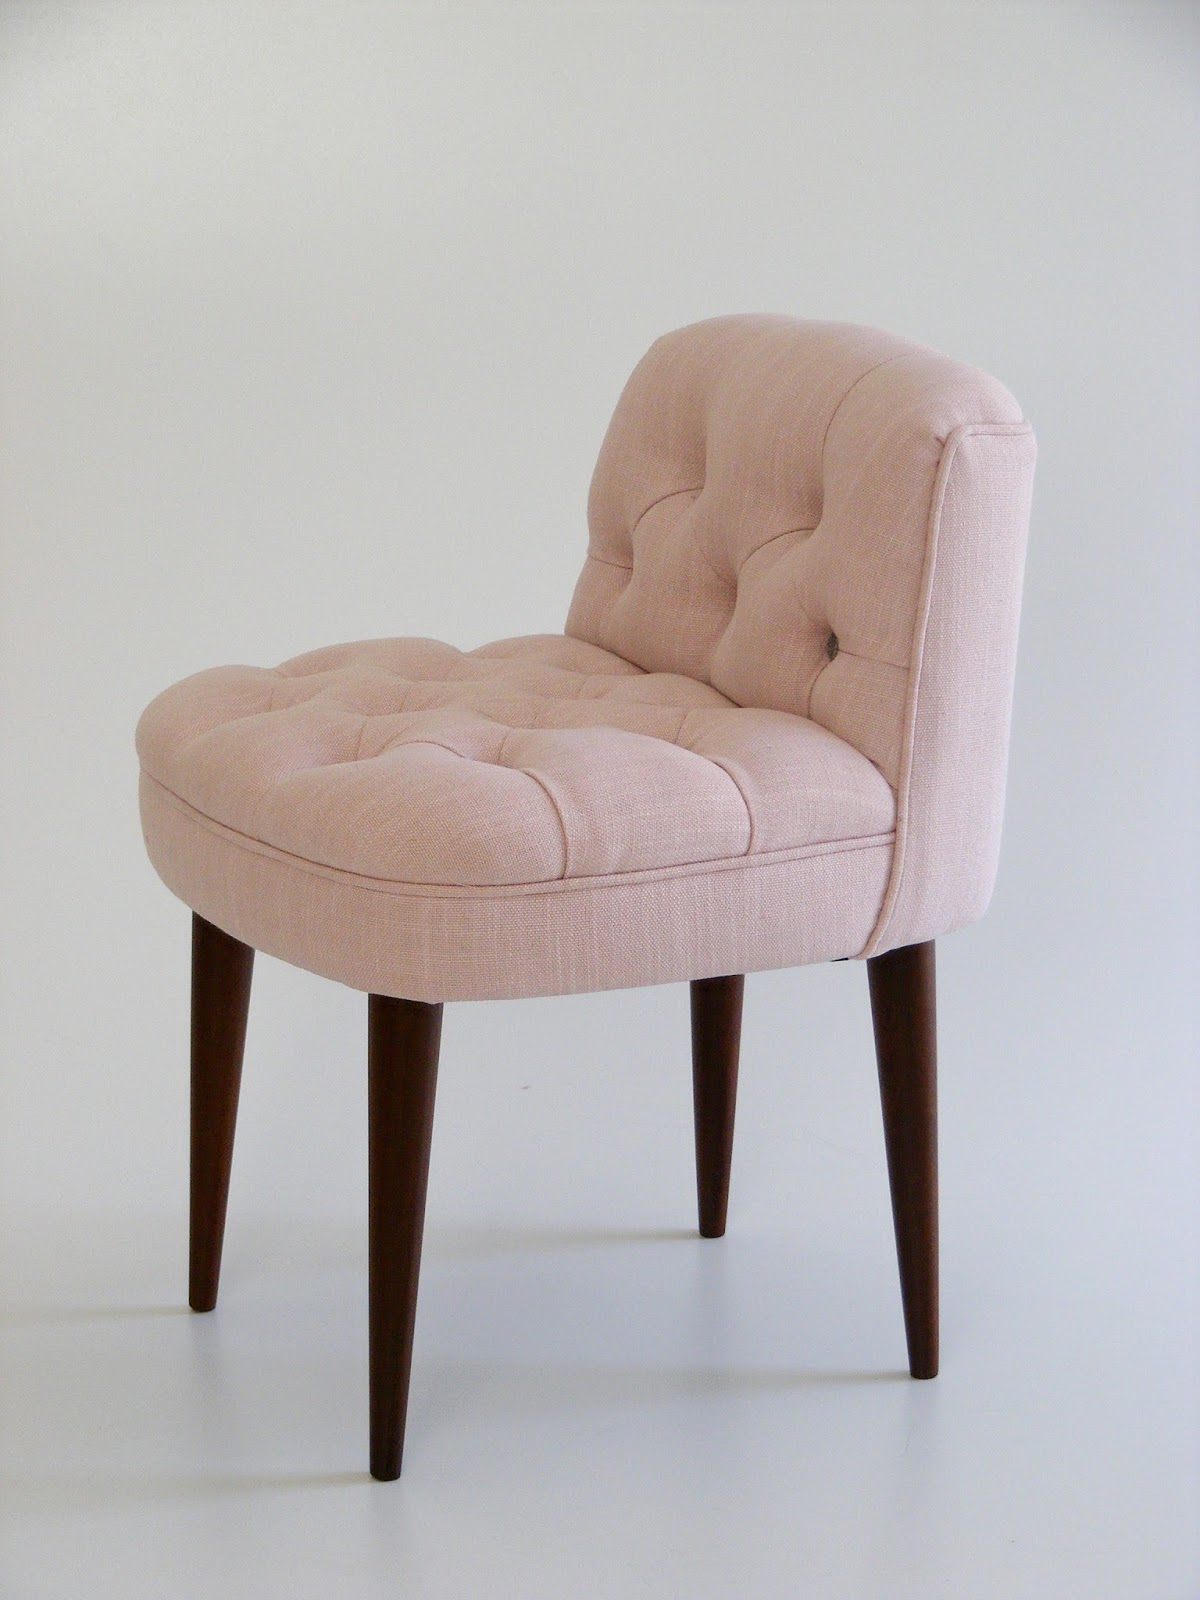 Small deep buttoned vintage dressing room chair re-upholstered in dusty pink  and grey (Hertex Fabrics) 9305eecea